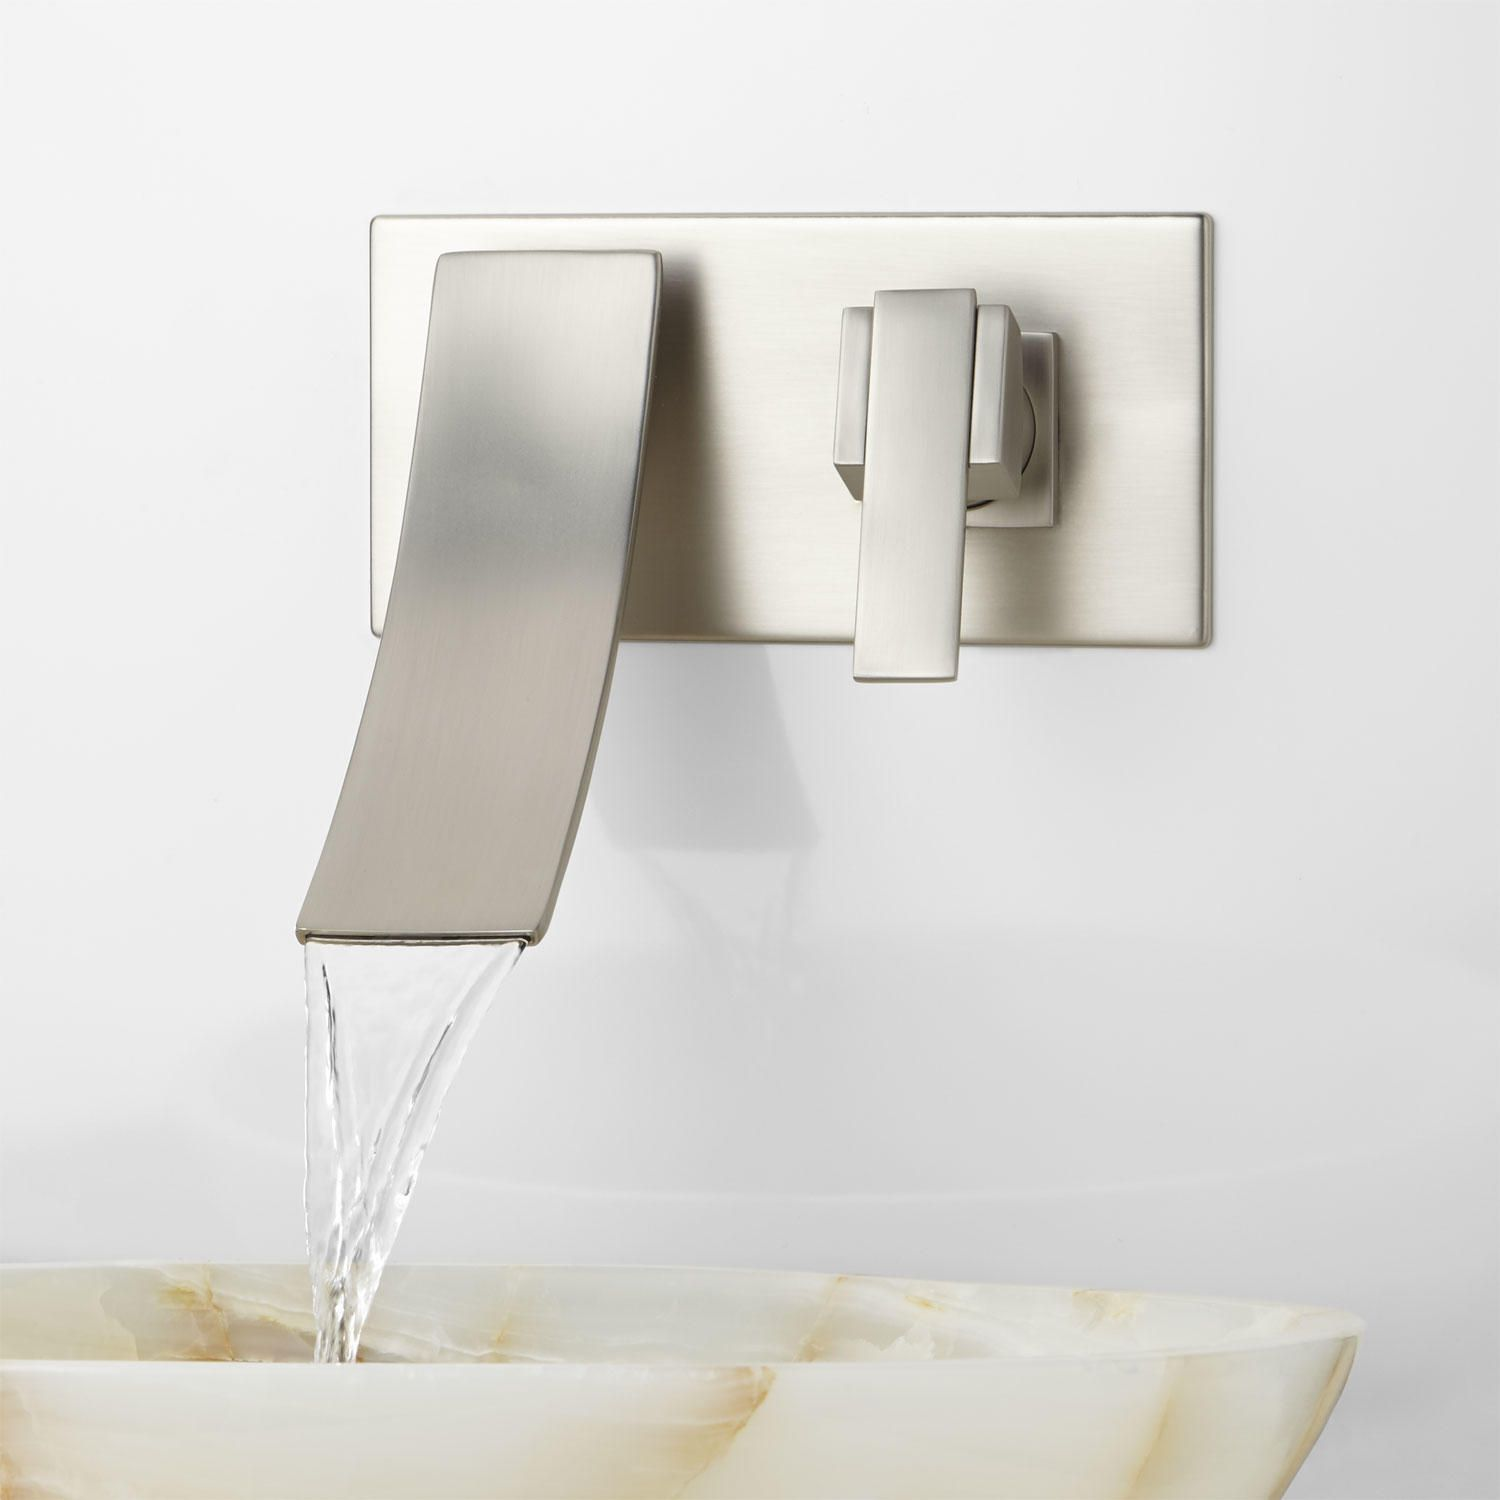 Cheval Wall-Mount Bathroom Faucet | Wall mount faucet, Wall mount ...